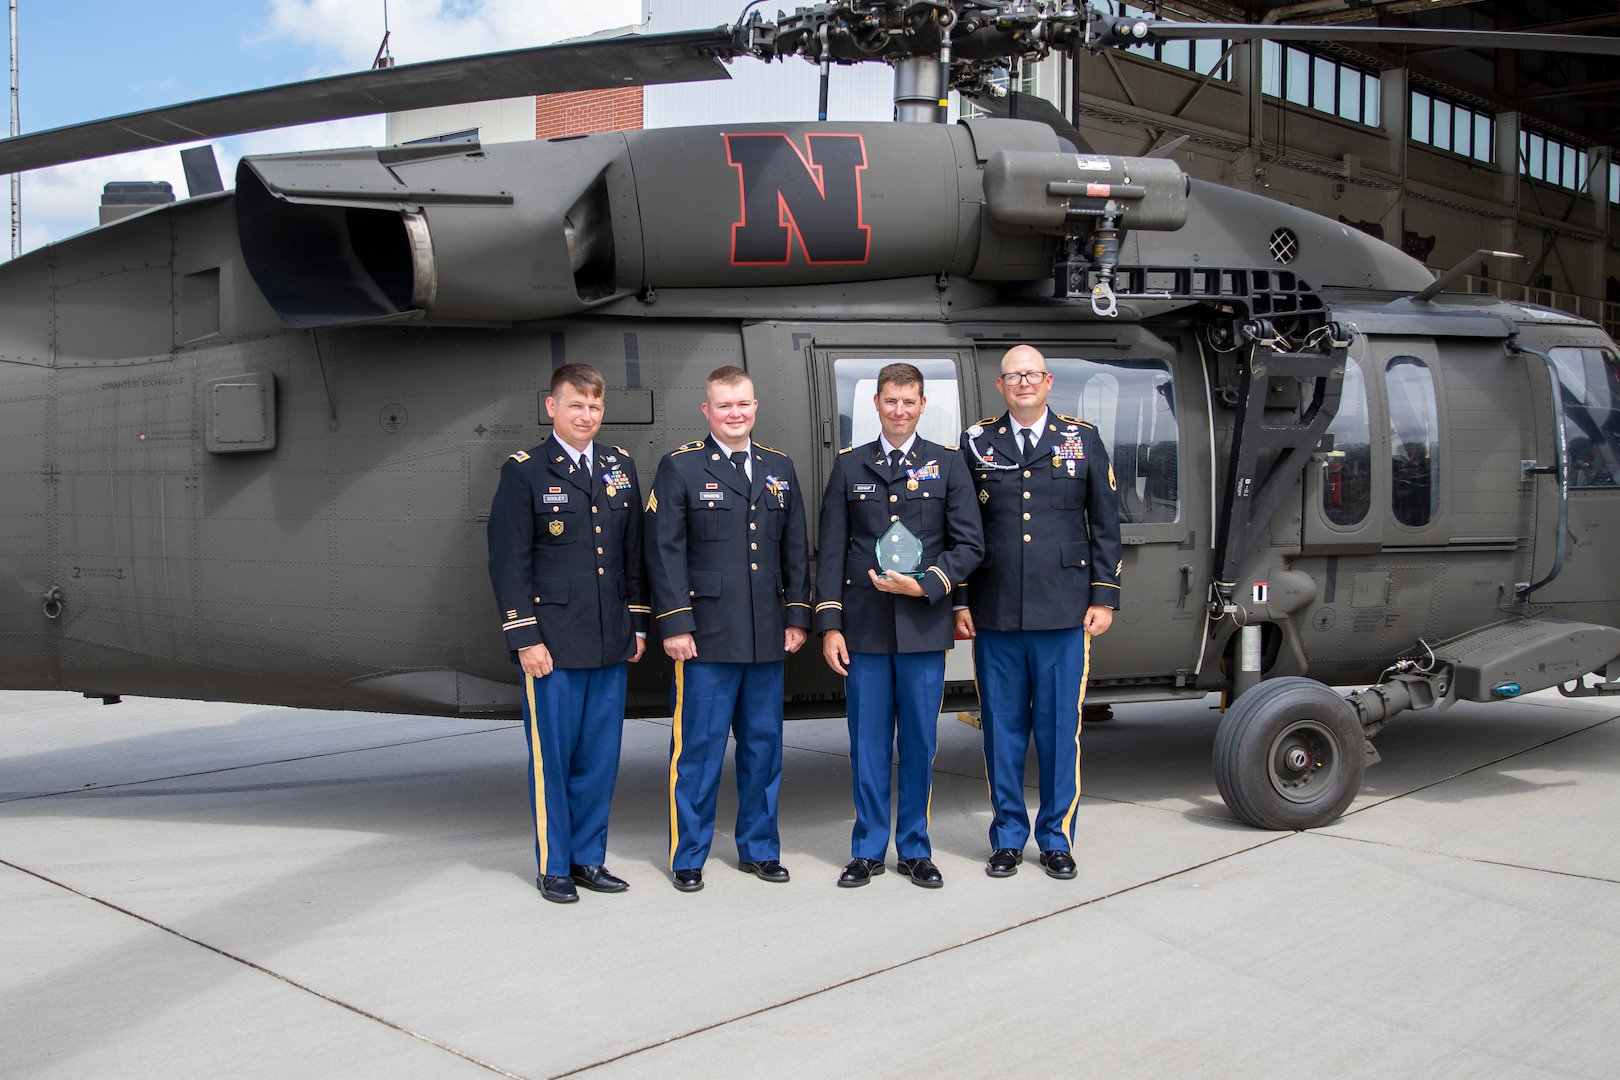 From left, Chief Warrant Officer 2 Nathan Dooley, pilot; Sgt. Aaron Winberg, crew chief; Chief Warrant Officer 3 Josh Schaaf, pilot-in-command; and Staff Sgt. Lawrence Lind, combat medic, with the DUSTOFF 2019 Rescue of the Year award. Flying the Nebraska Army National Guard UH-60 Black Hawk helicopter behind them the evening of March 14, 2019,  they rescued seven first responders from floodwaters near the Elkhorn River.